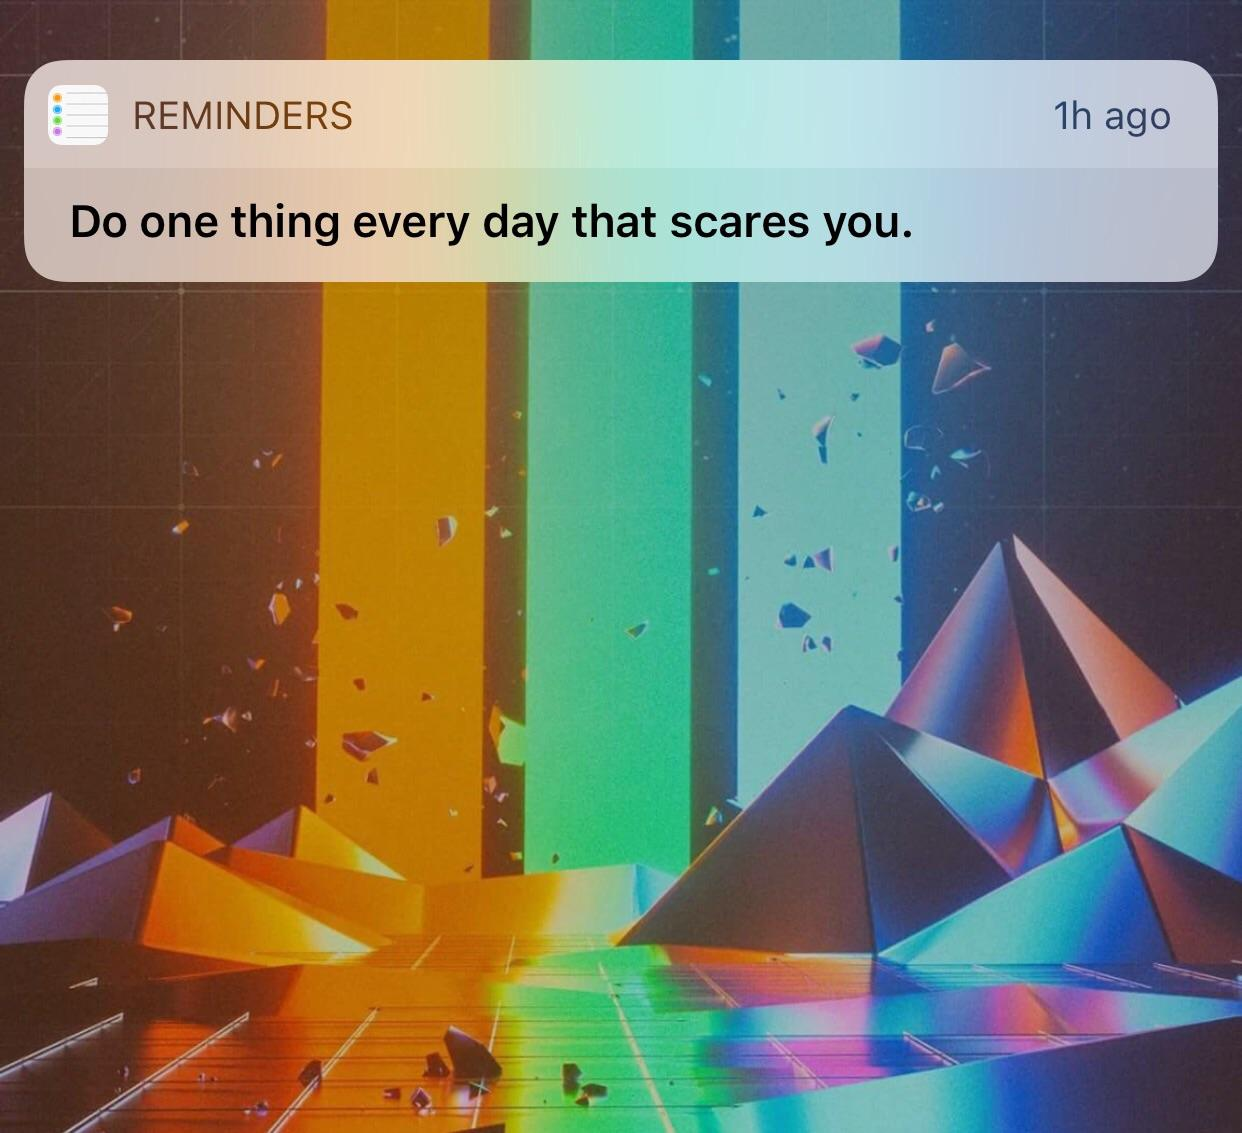 [Image] Do one thing every day that scares you.